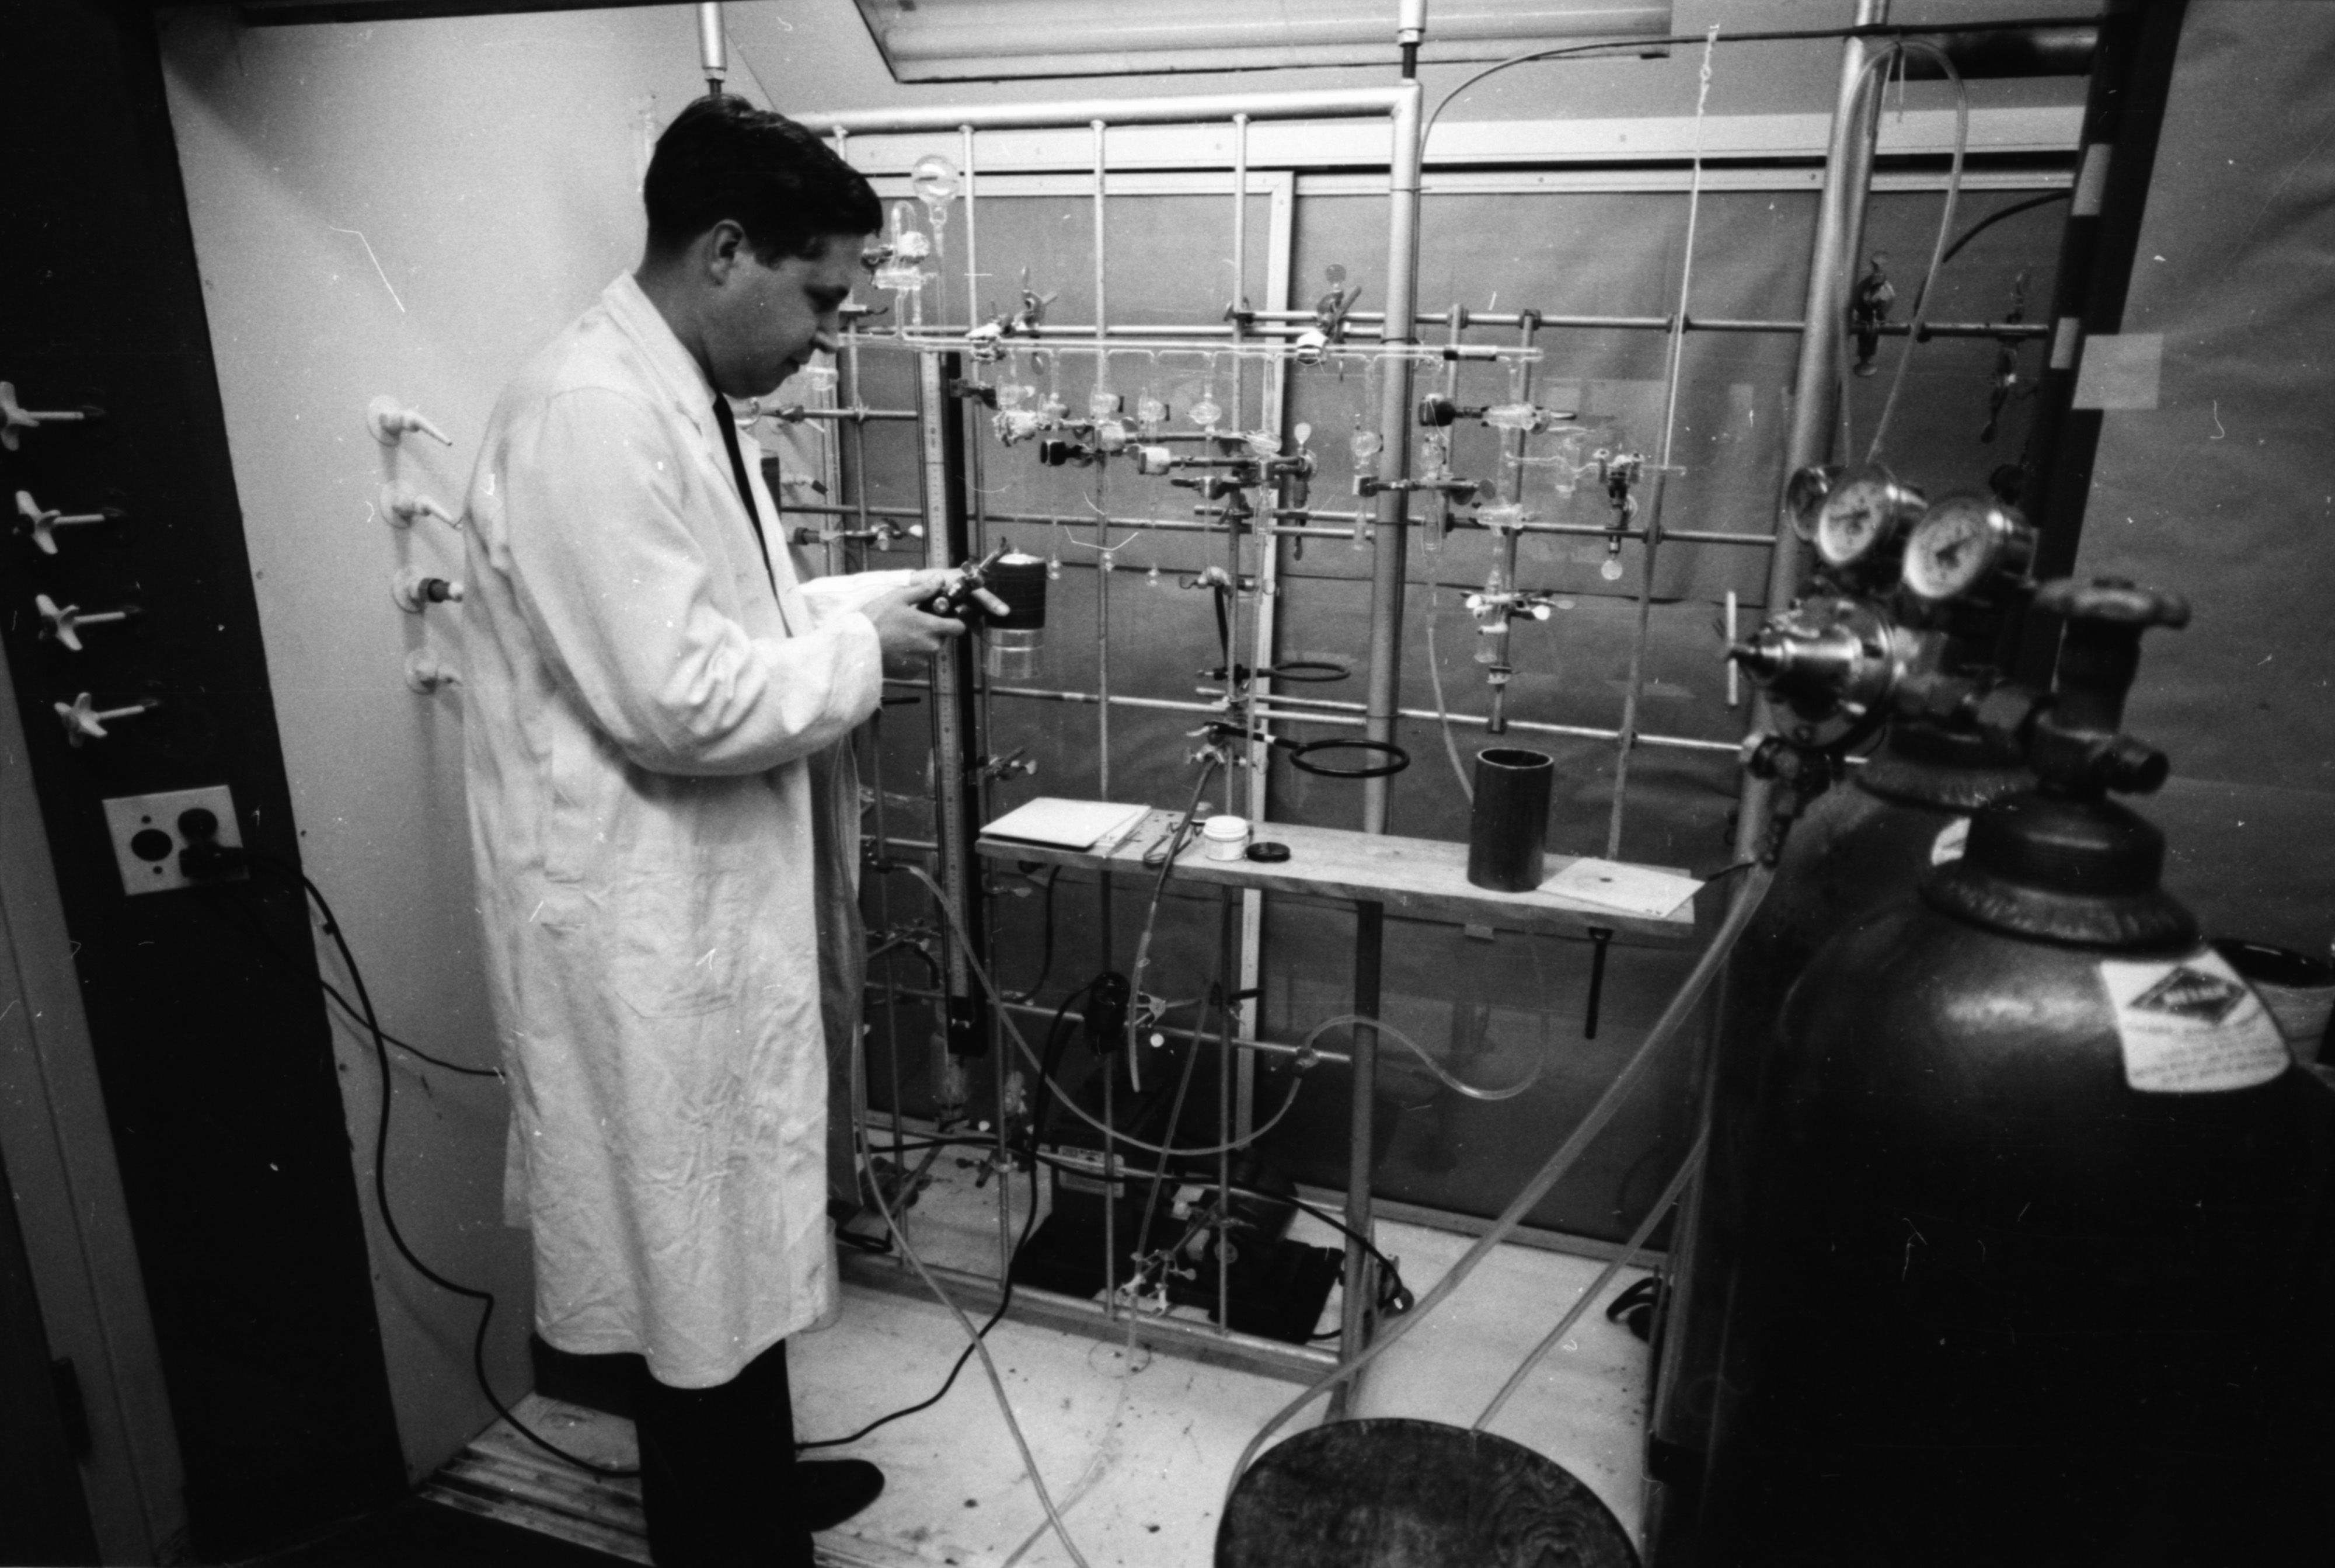 Professor Adon A. Gordus in the Phoenix Memorial Laboratory, August 1961 image